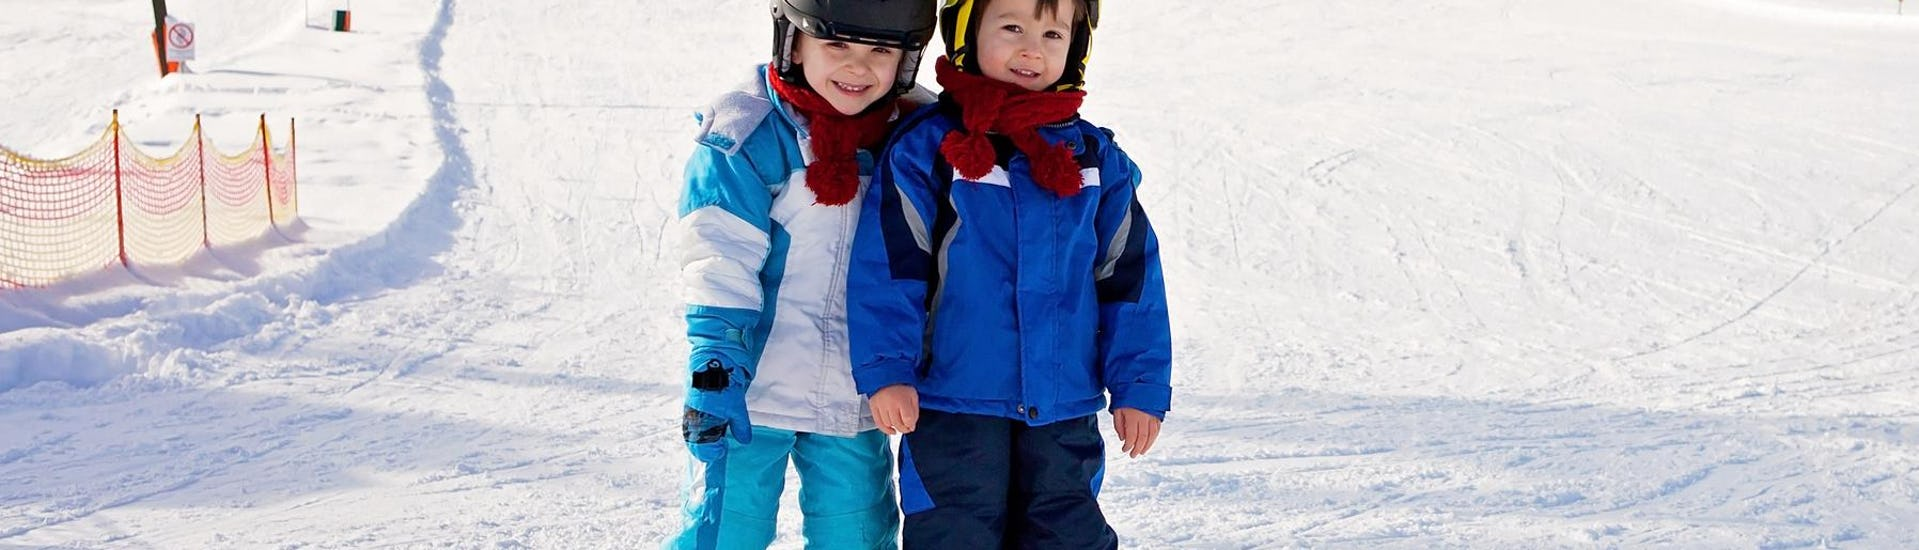 "Ski Lessons ""Kids Wonderland"" (from 3 years) - Beginners"